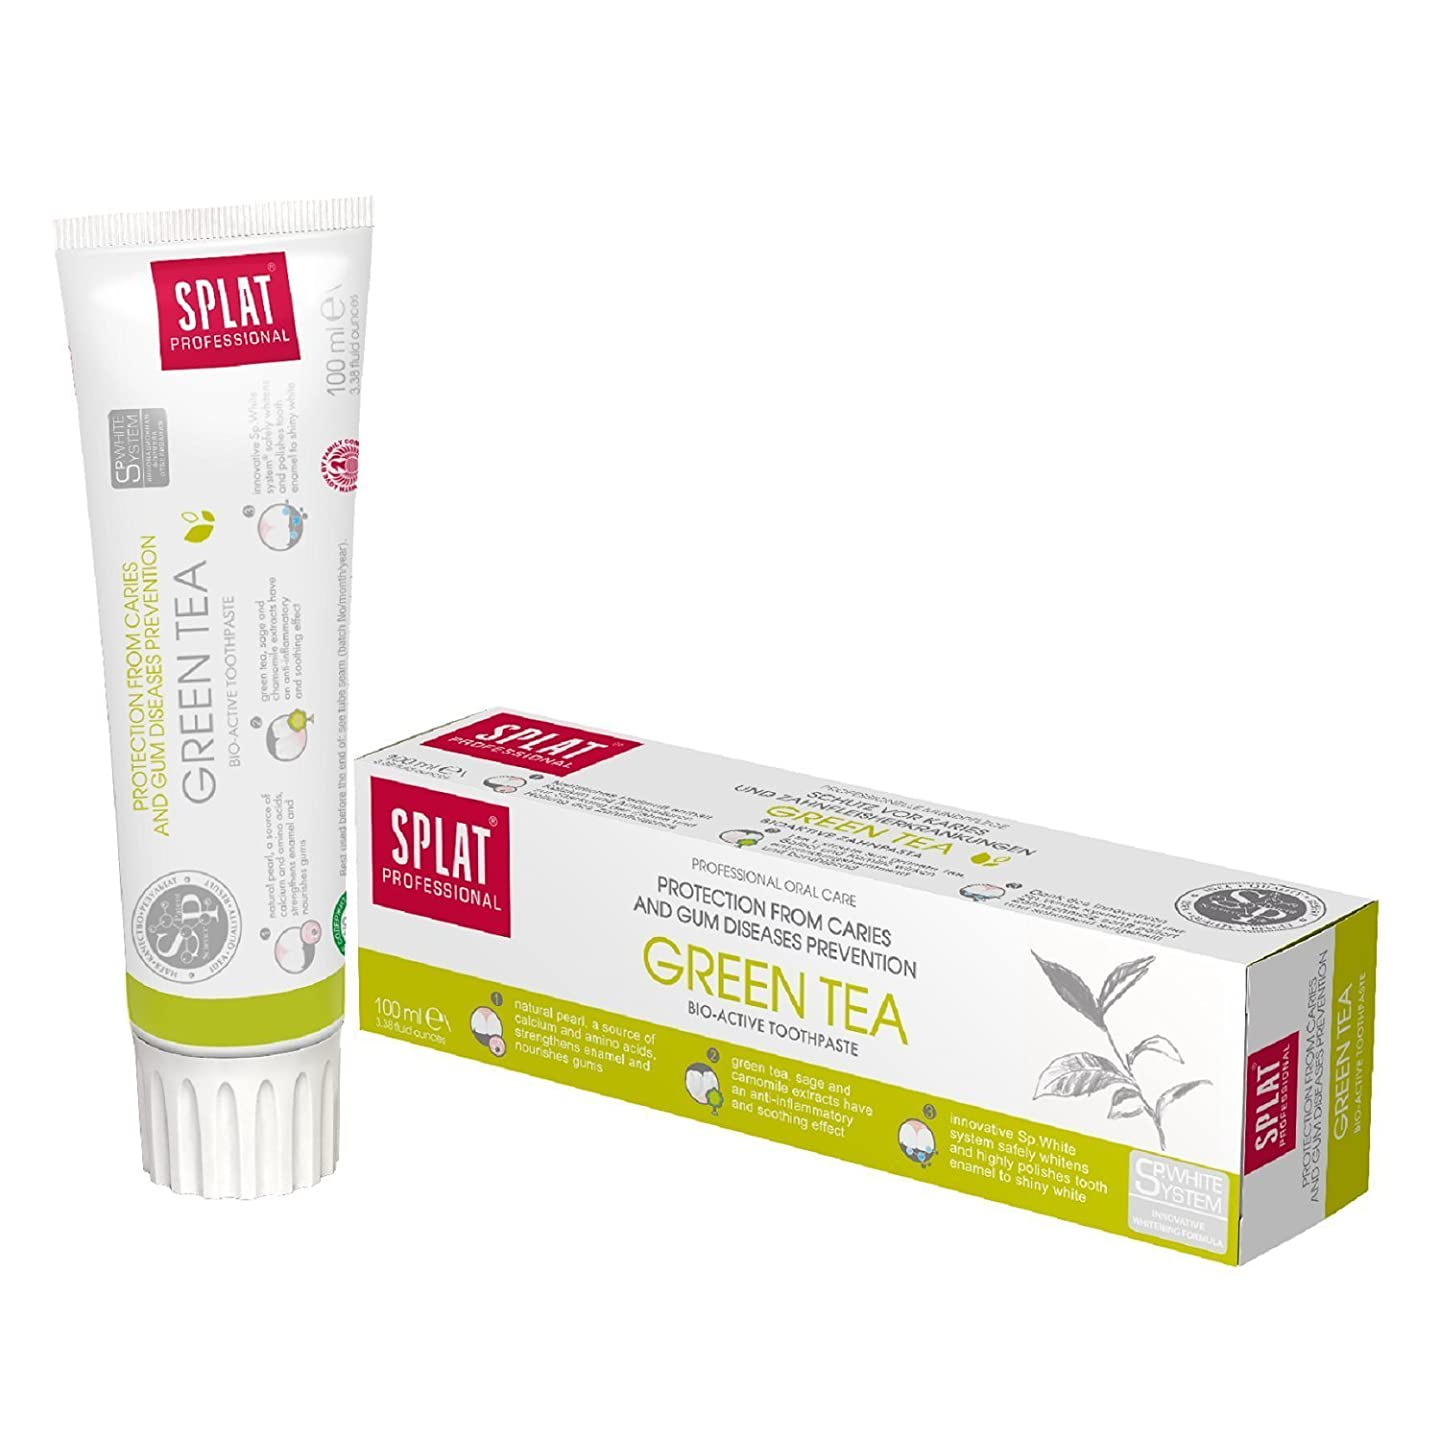 難民立証するラケットToothpaste Splat Professional 100ml (Green tea)